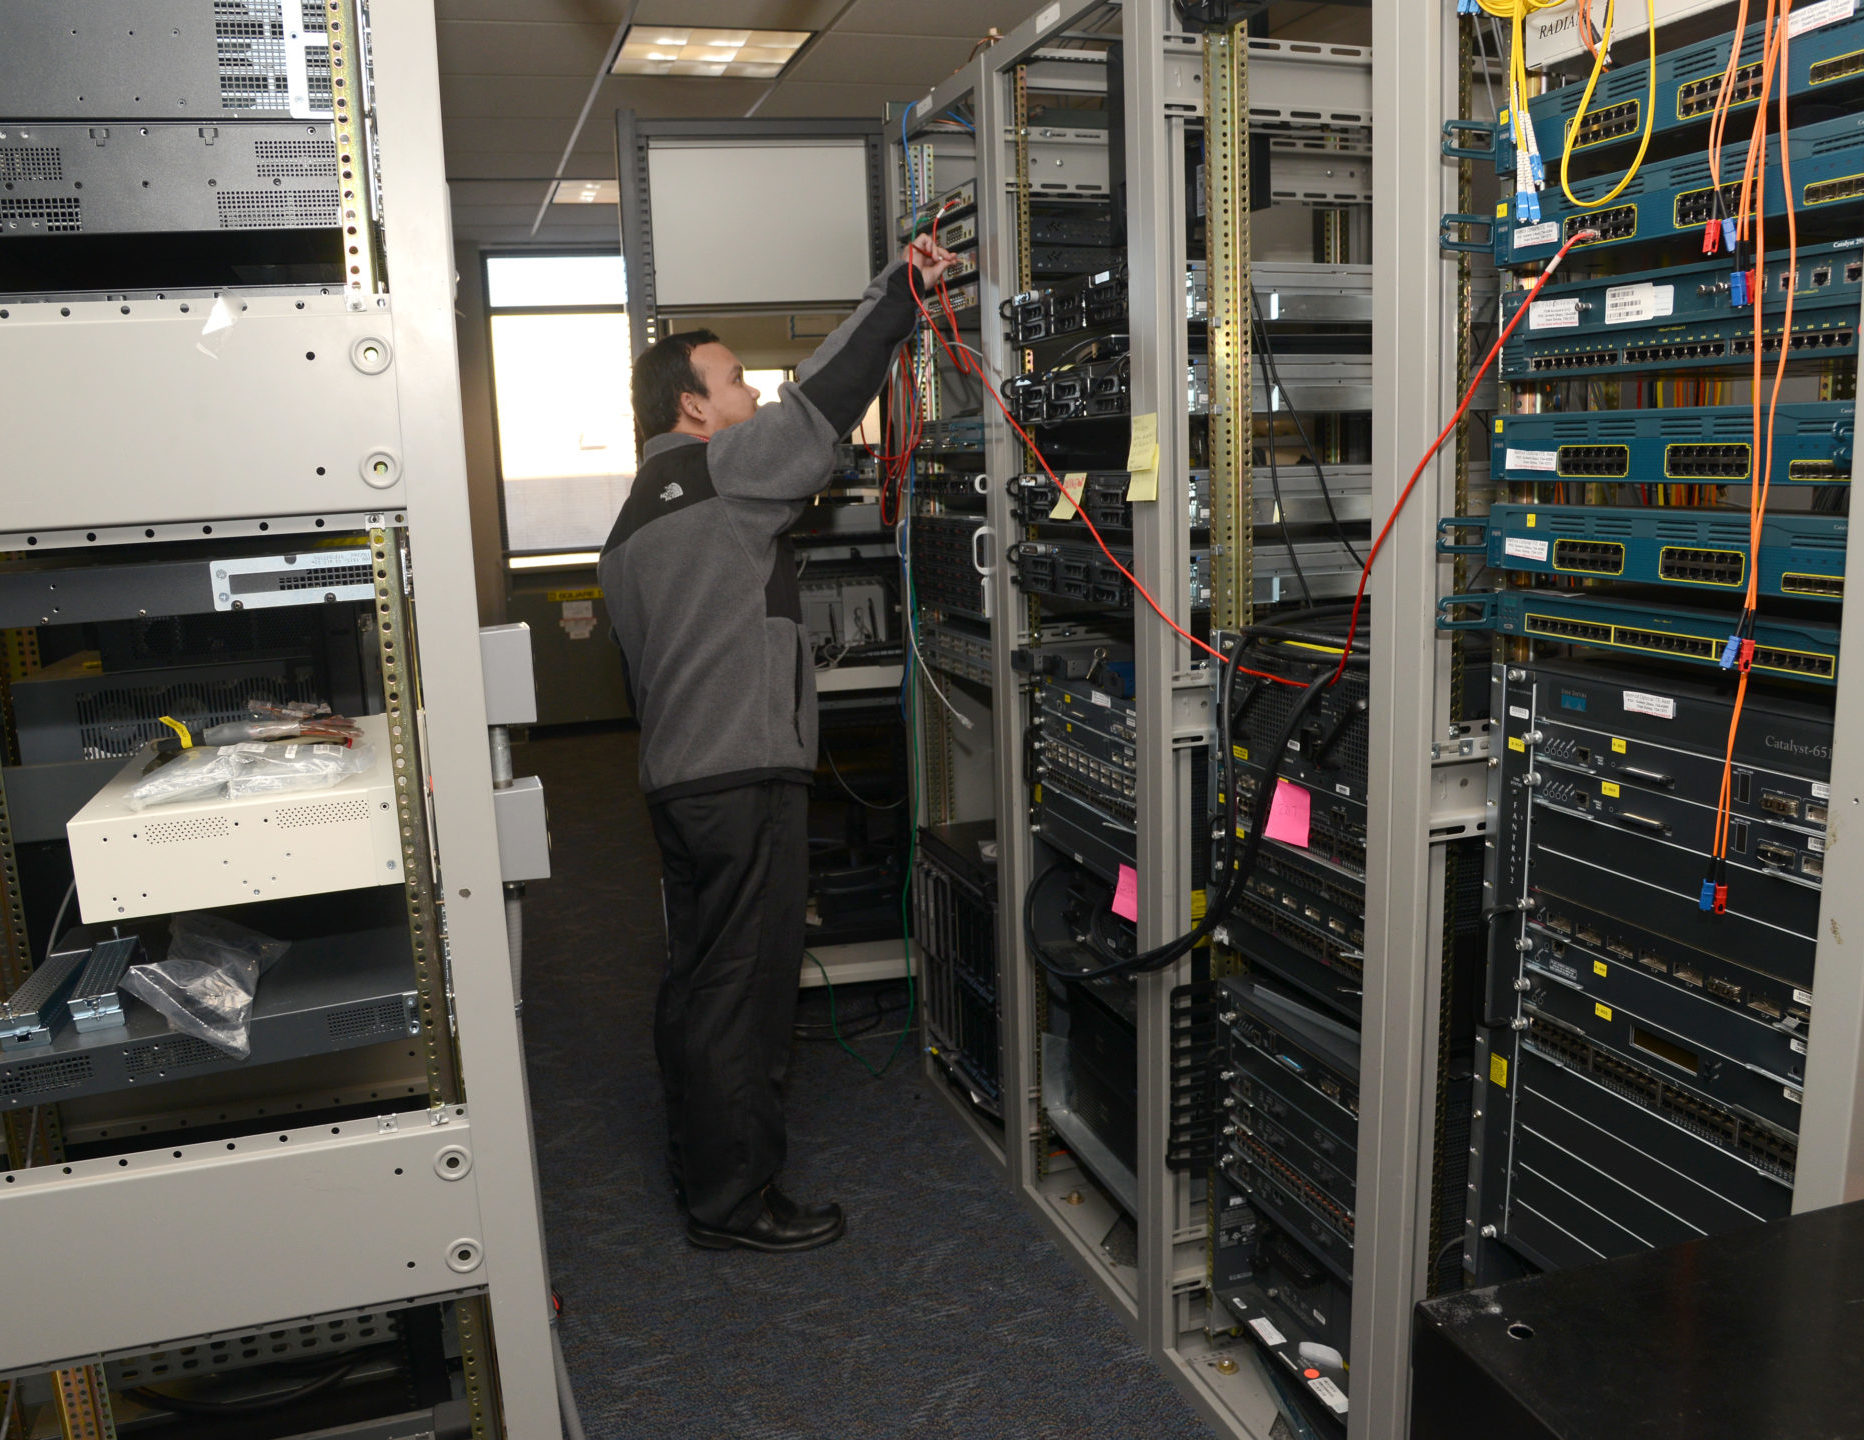 IT Tech working on a server stack